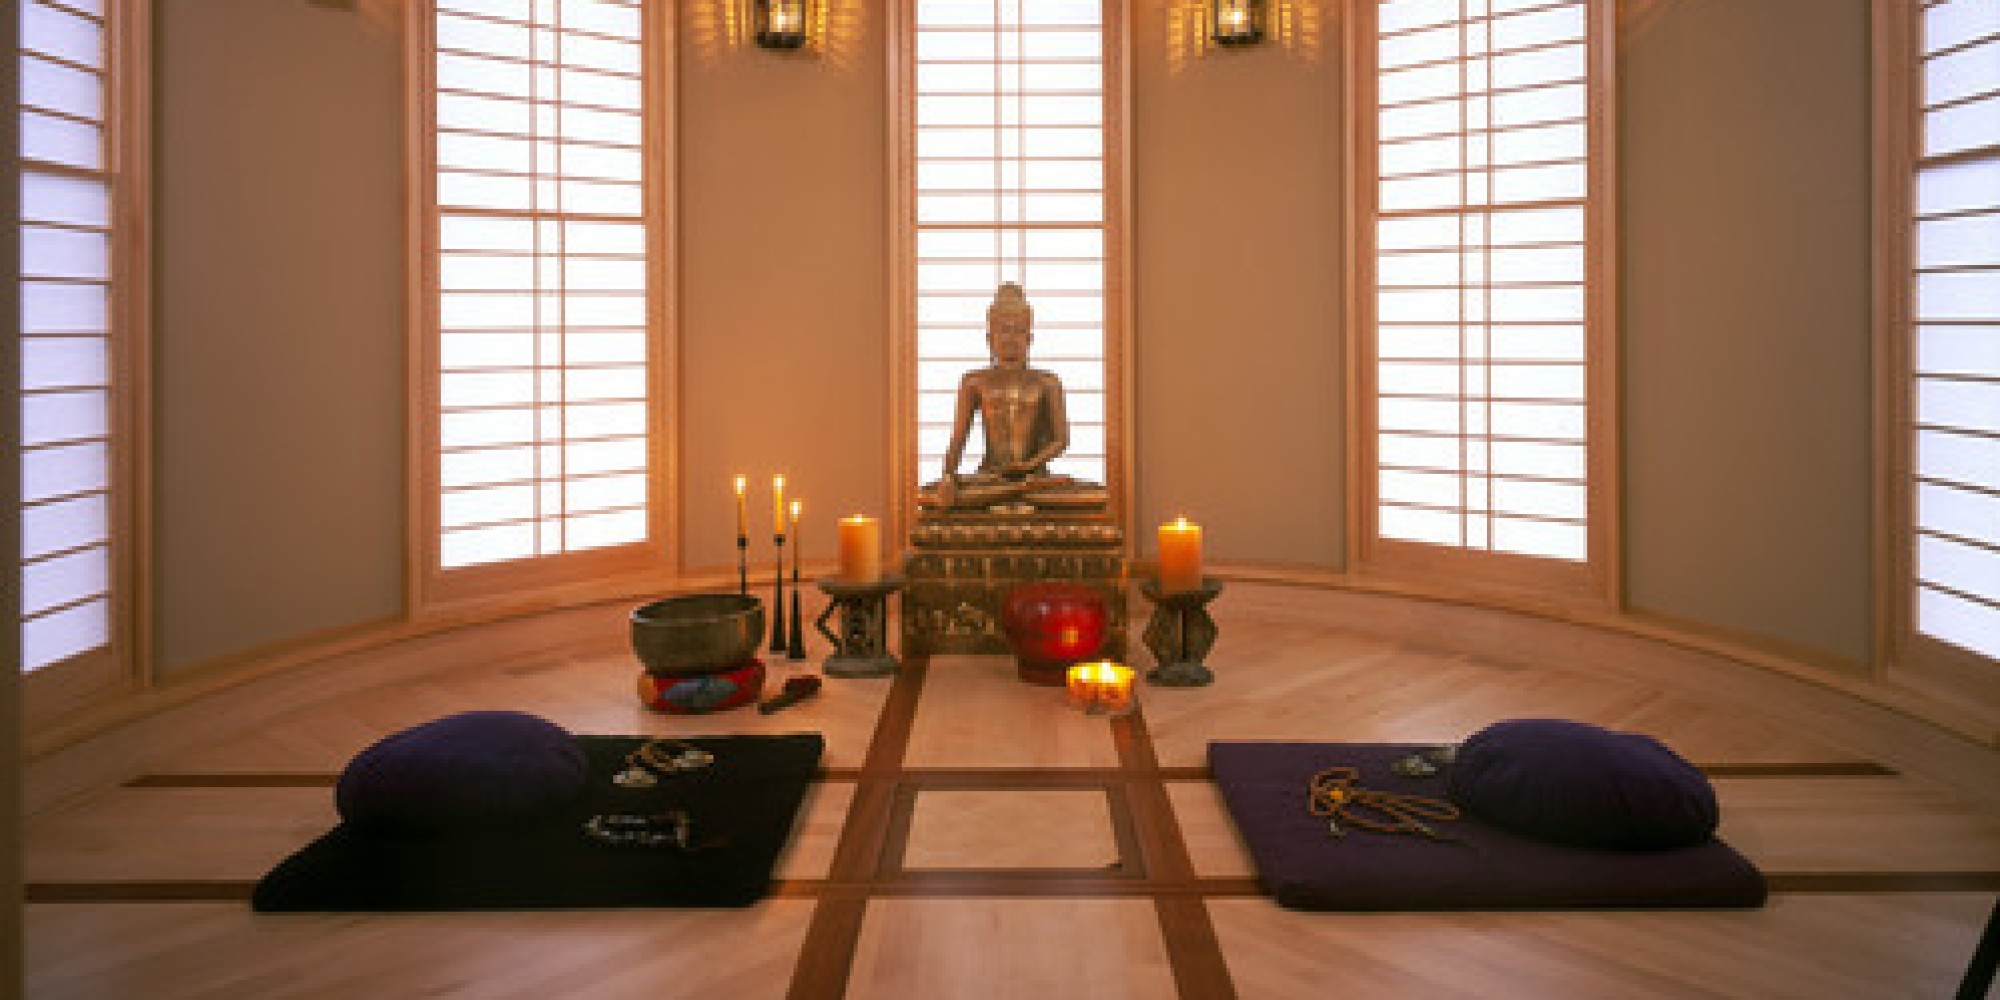 Meditation Decor Alluring How To Create A Meditation Room  Kheops International Design Inspiration